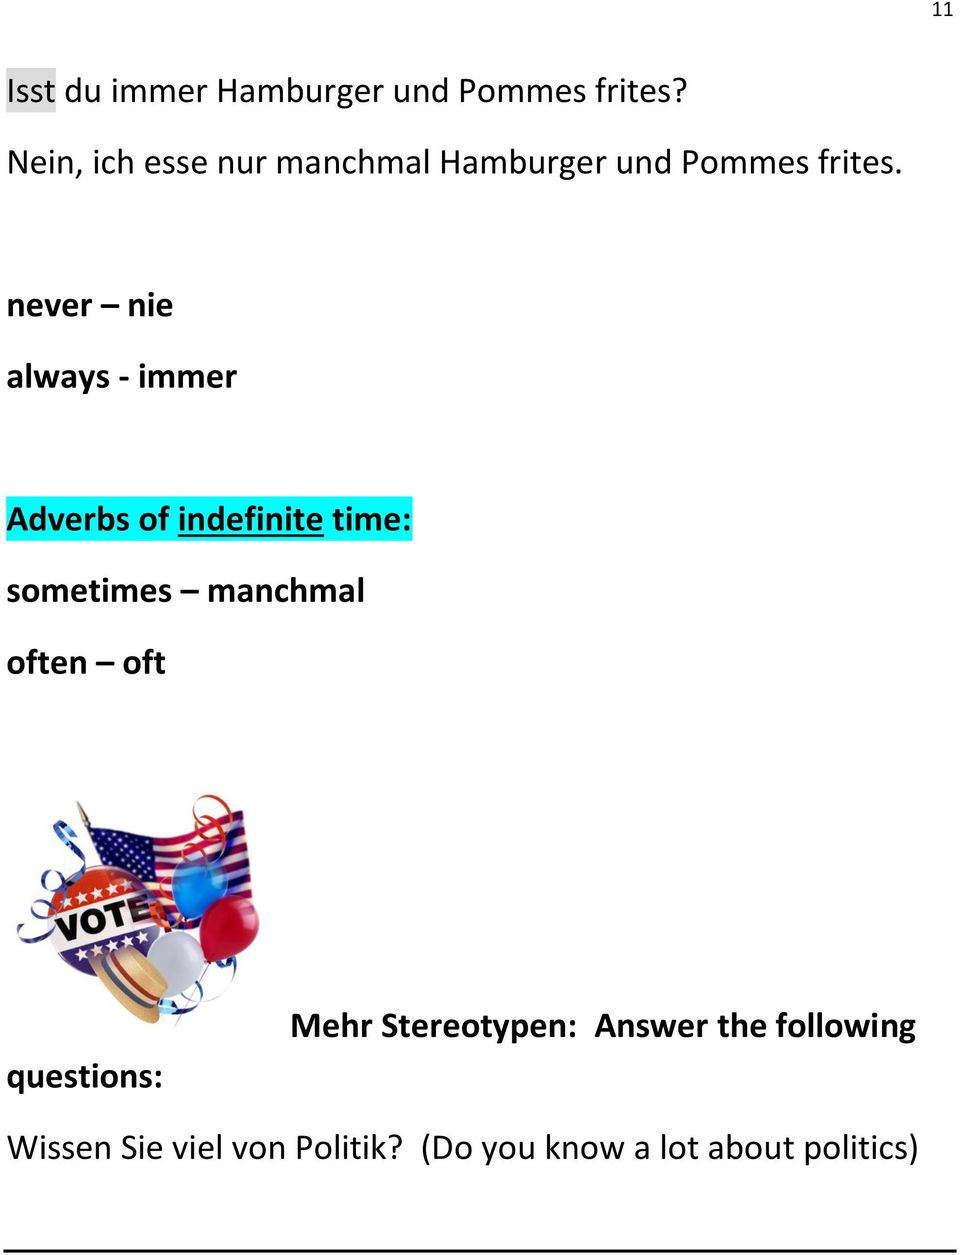 never nie always - immer Adverbs of indefinite time: sometimes manchmal